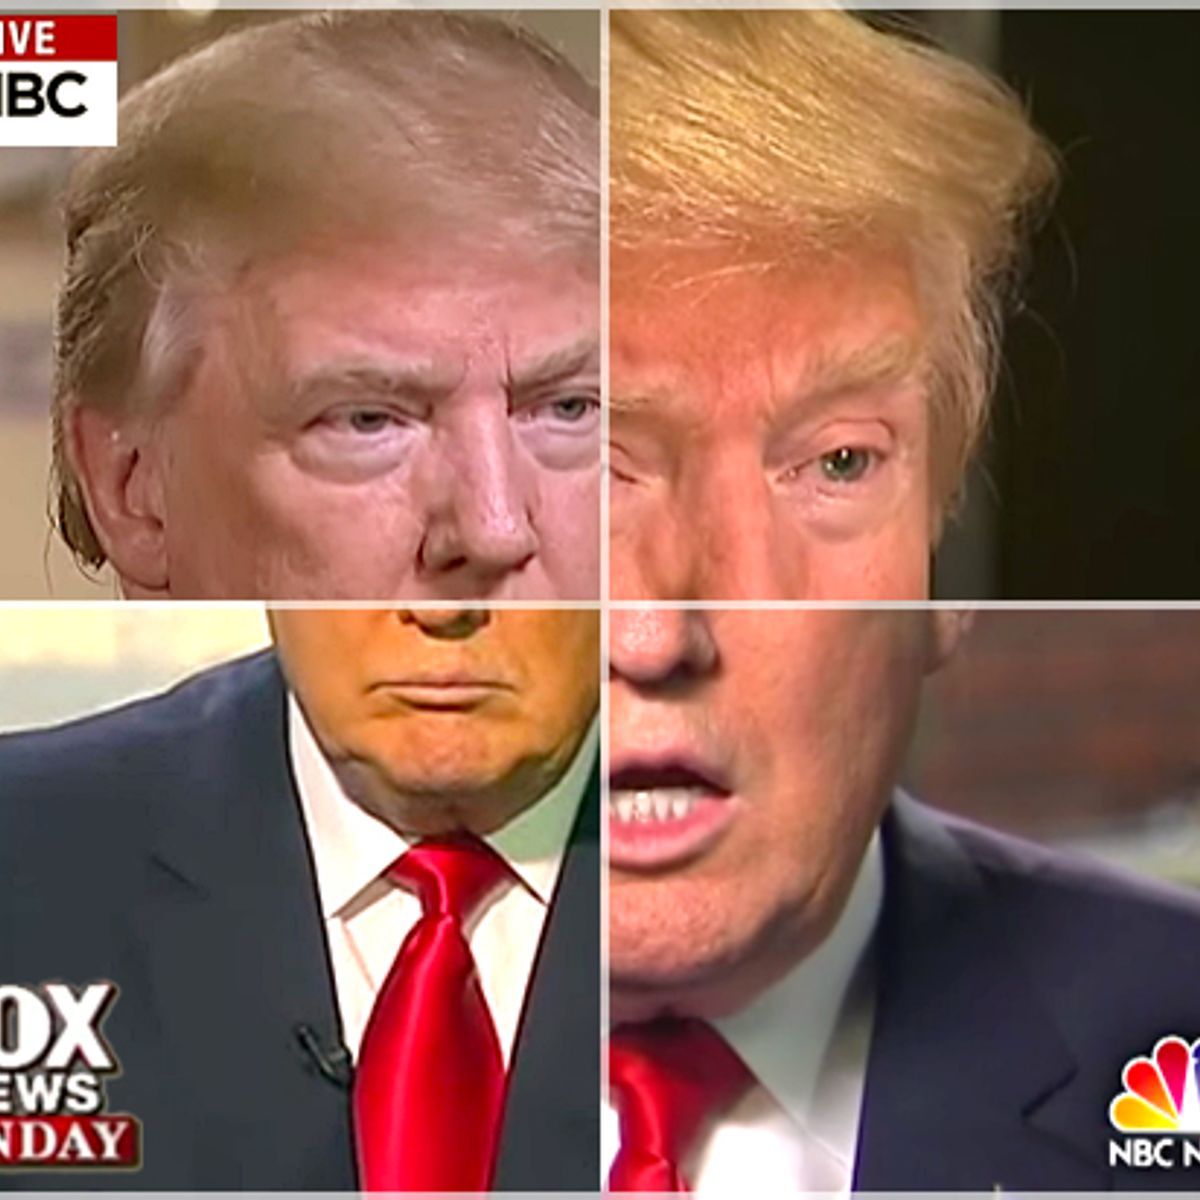 It's even worse than Fox News: The sick collusion between Donald Trump and our democracy-destroying media